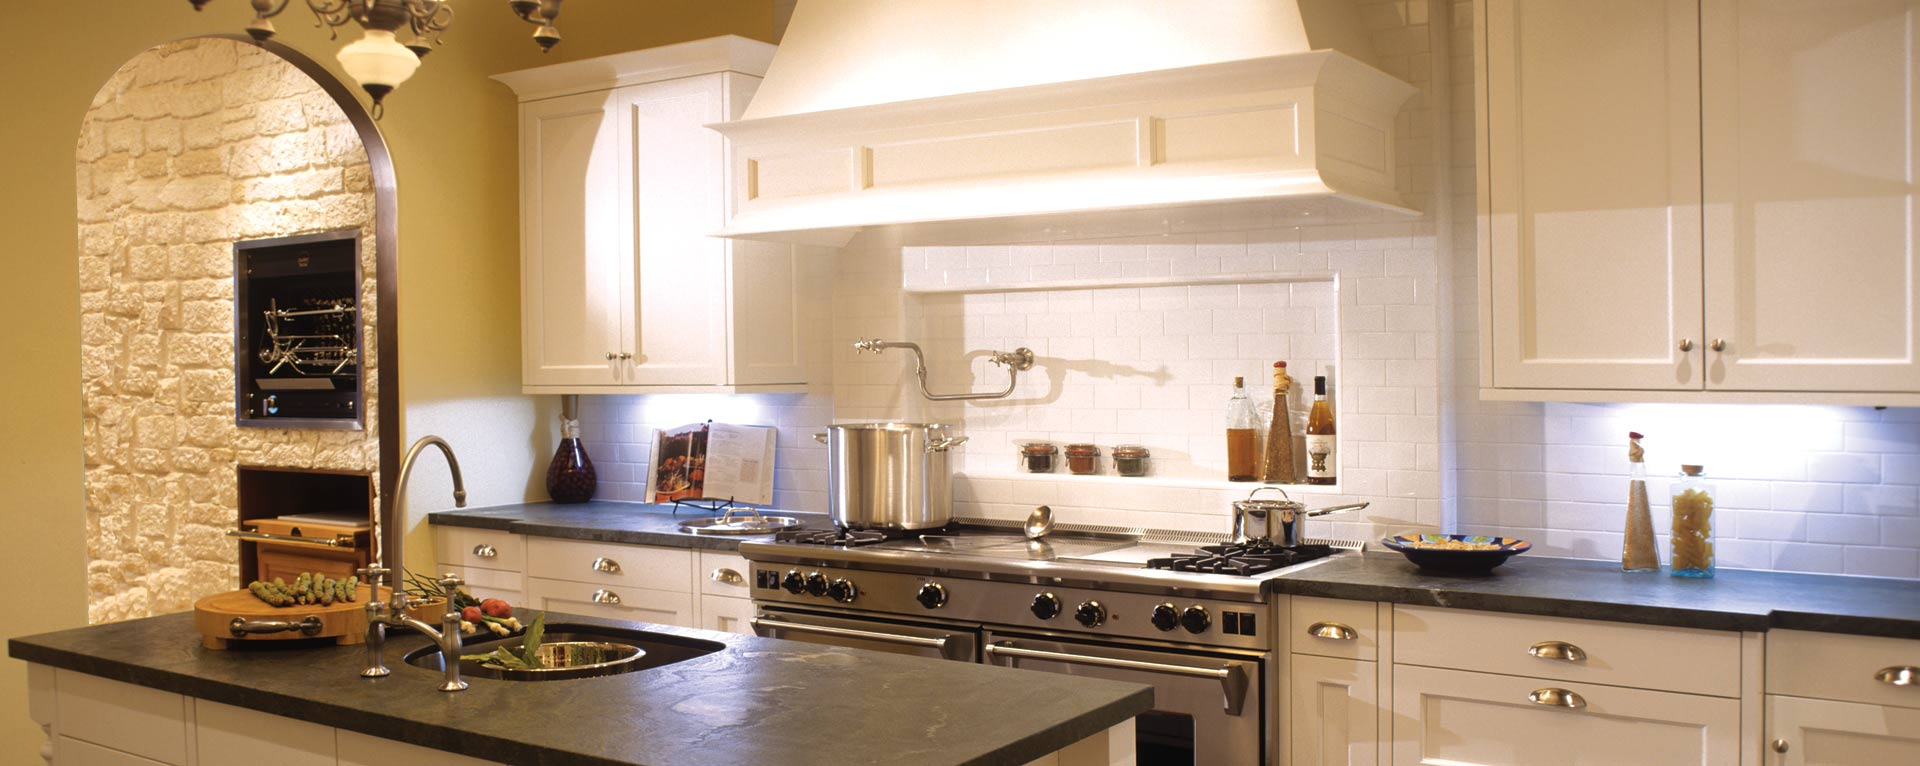 Canadian Kitchen Cabinets Manufacturers home | artcraft kitchens